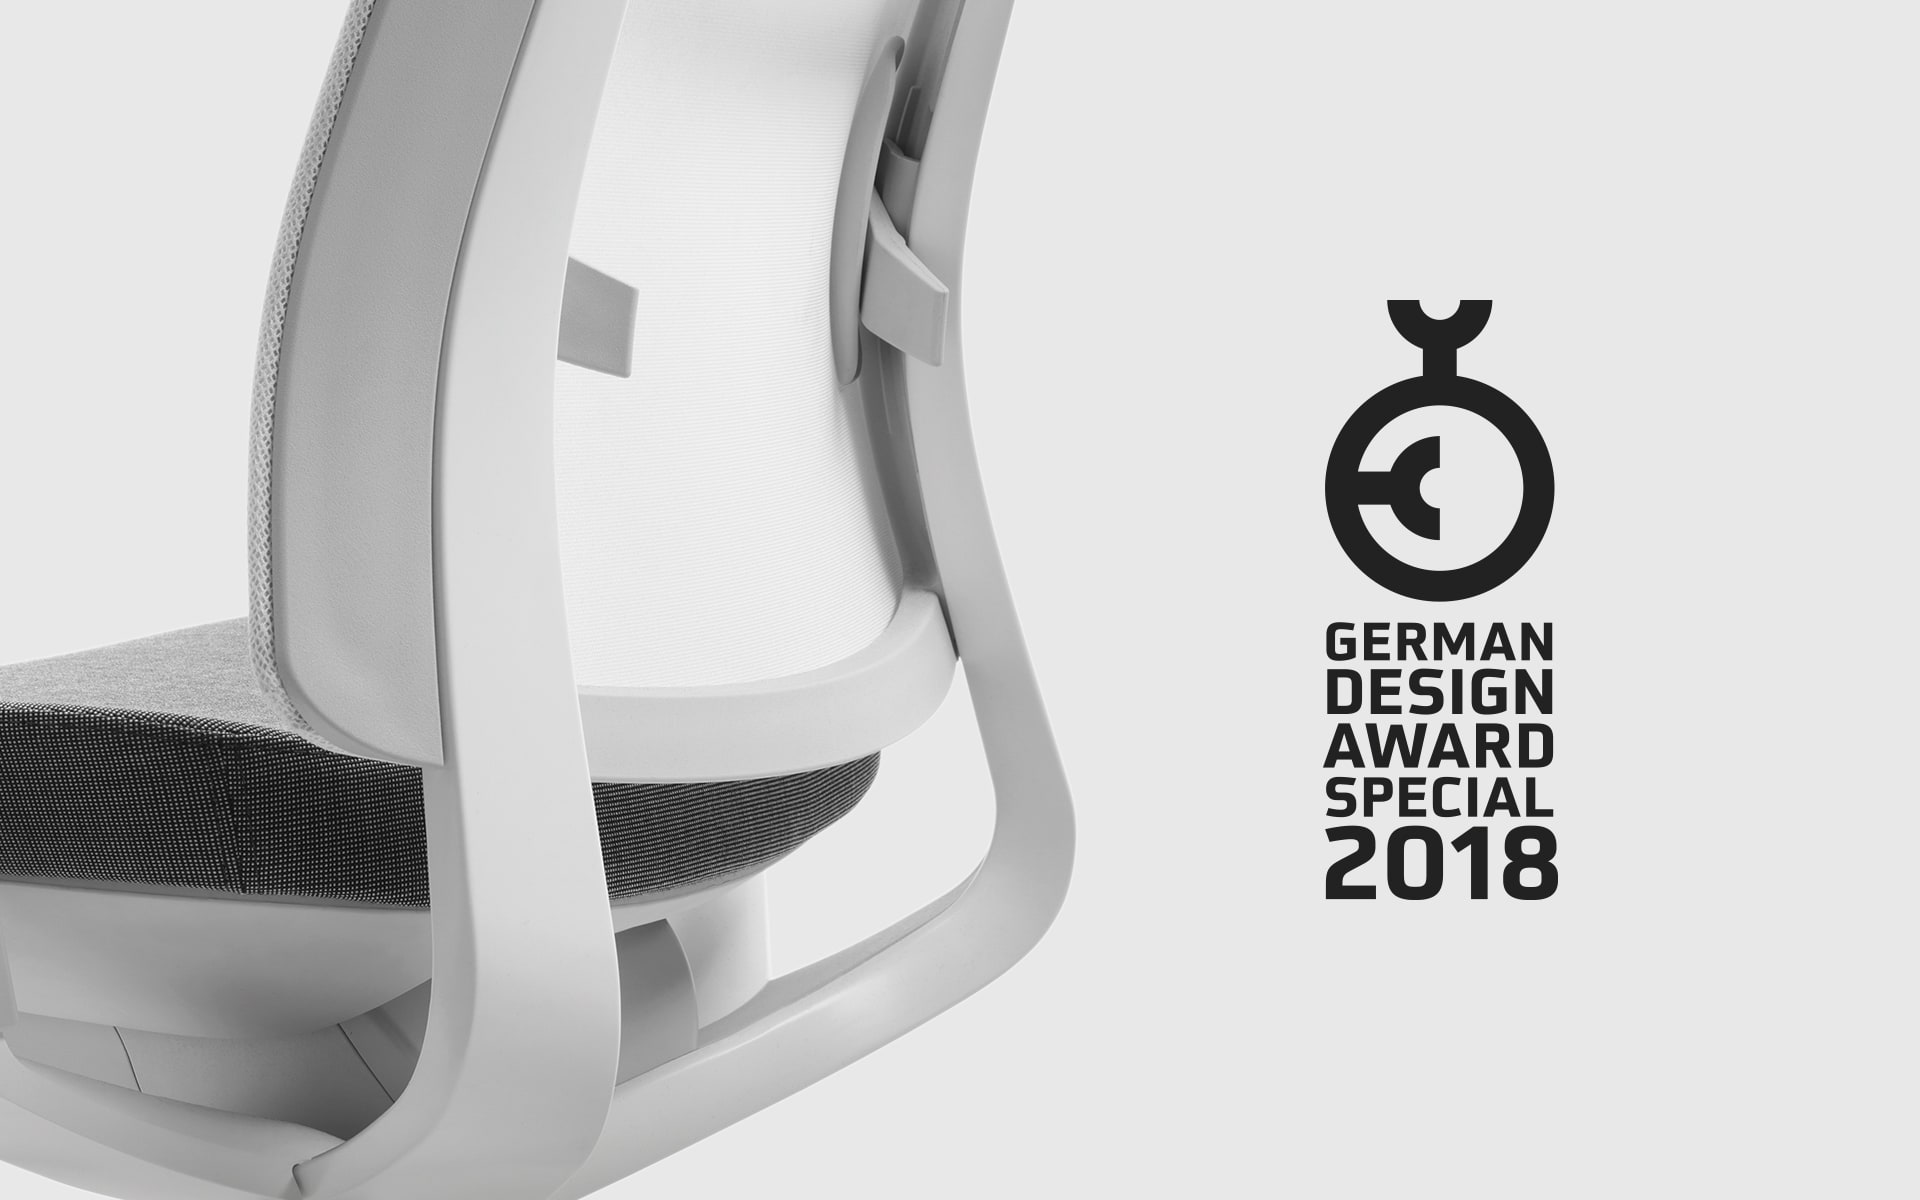 office chair good design fabric desk chairs with arms ito development profim violle by wins german award 2018